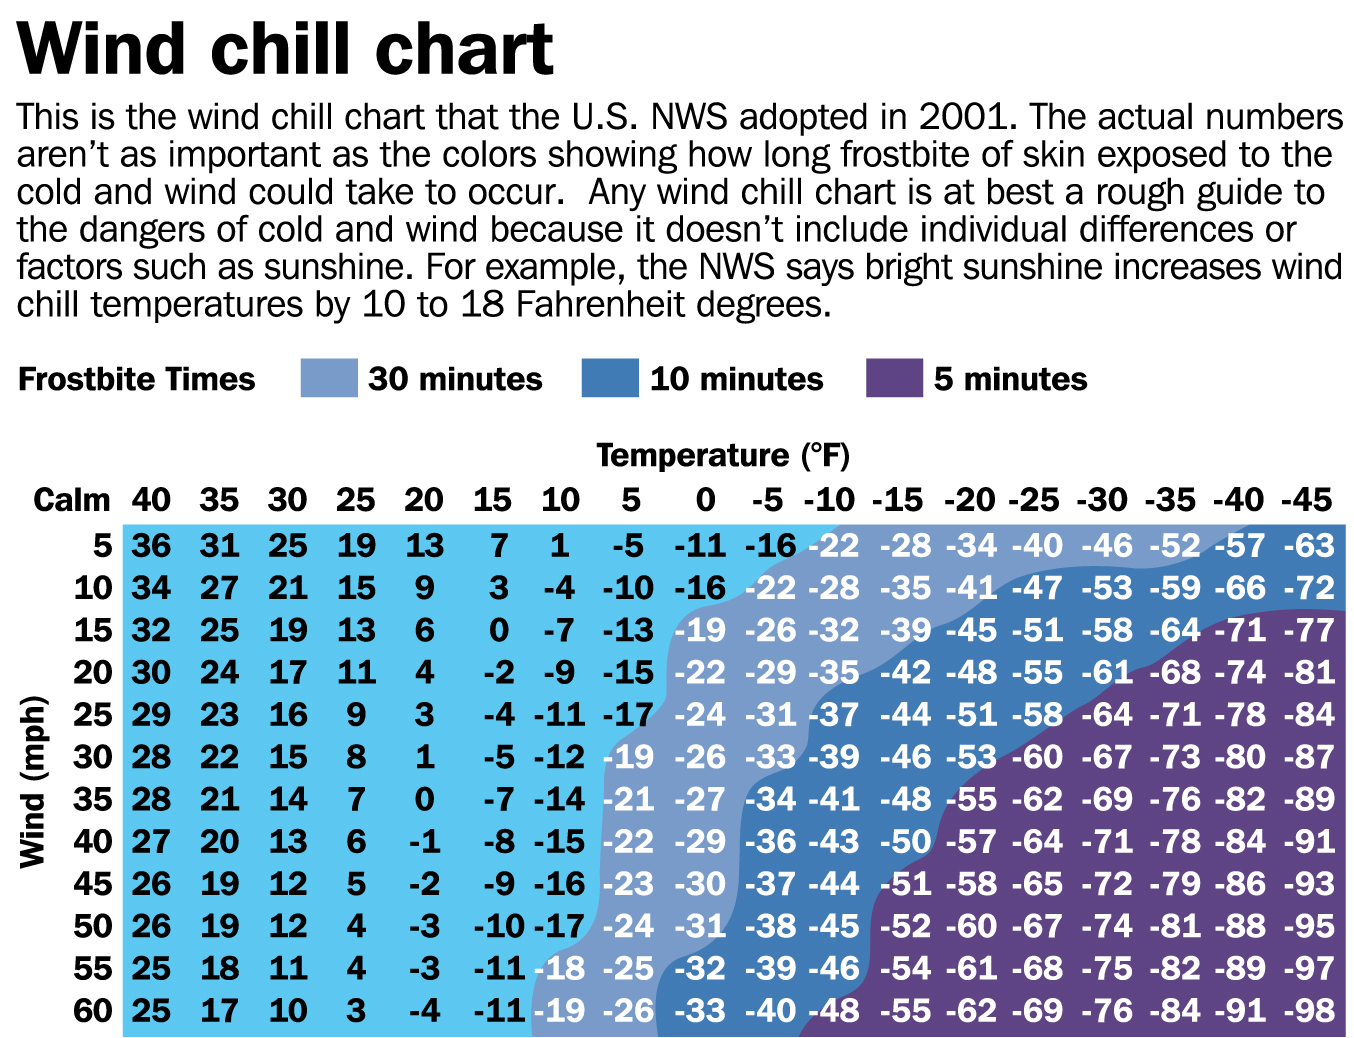 This is a graphic of Mesmerizing Printable Wind Chill Chart